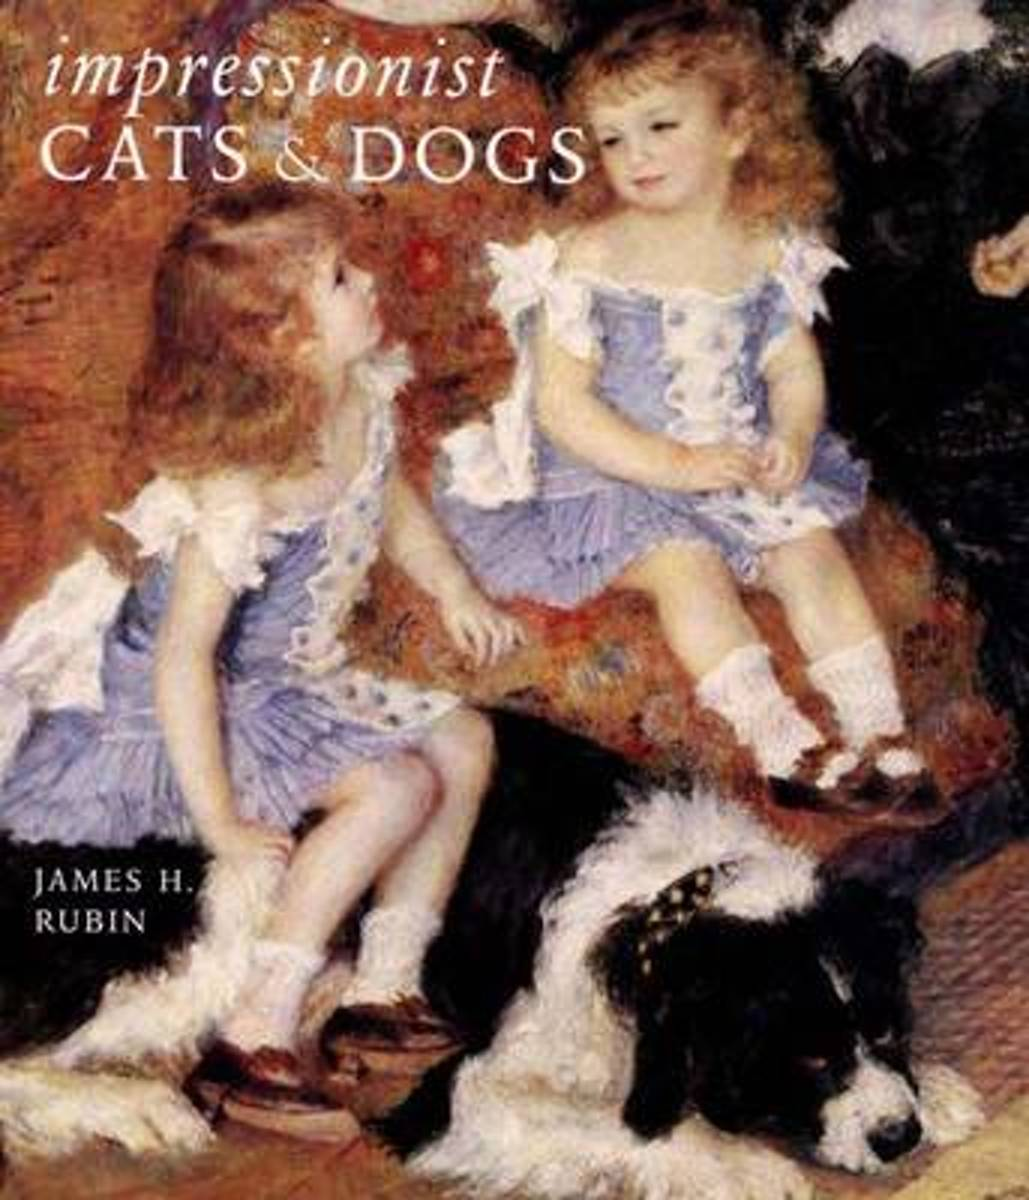 Impressionist Cats and Dogs